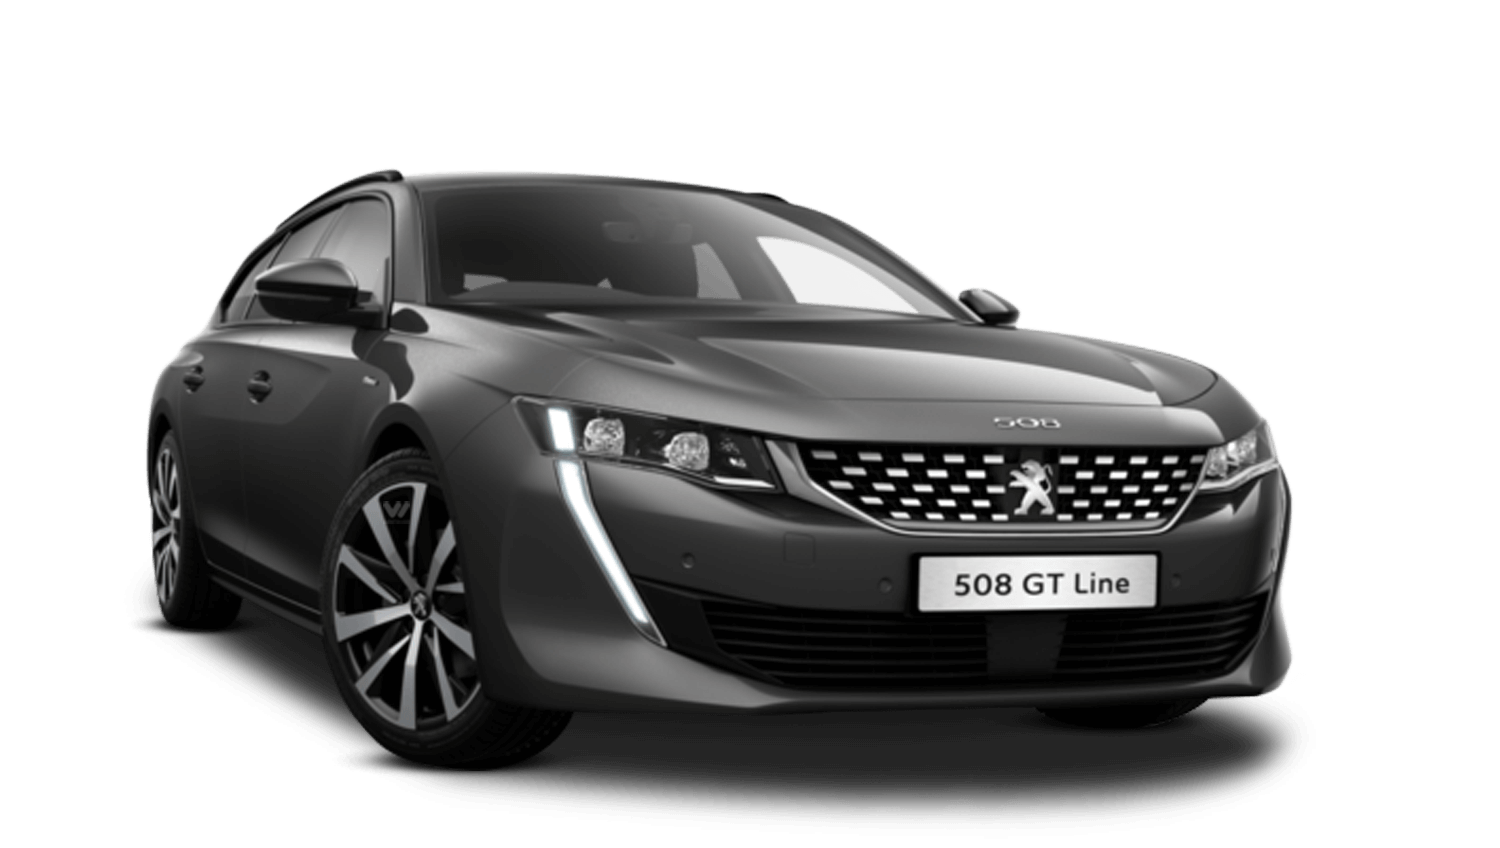 Nimbus Grey All-New Peugeot 508 SW